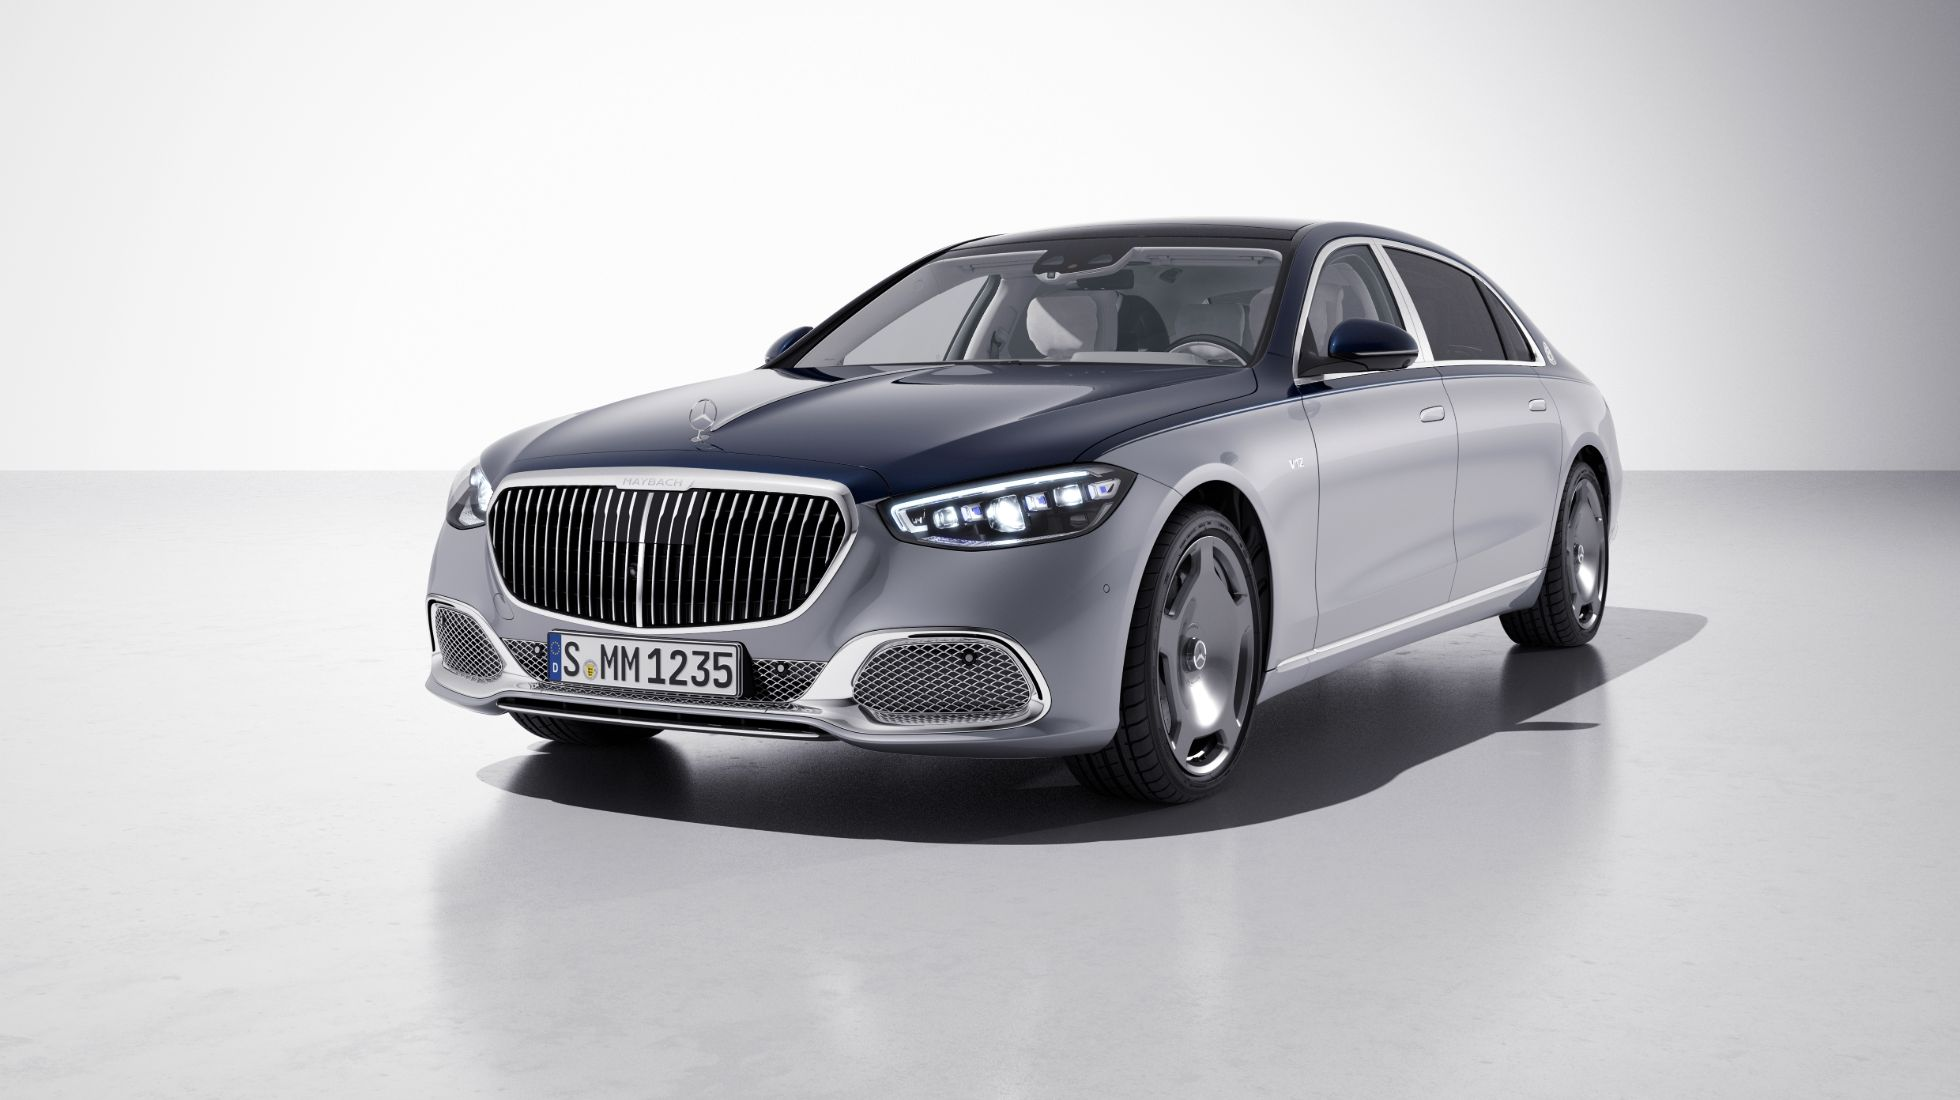 100 Years of Maybach perfection